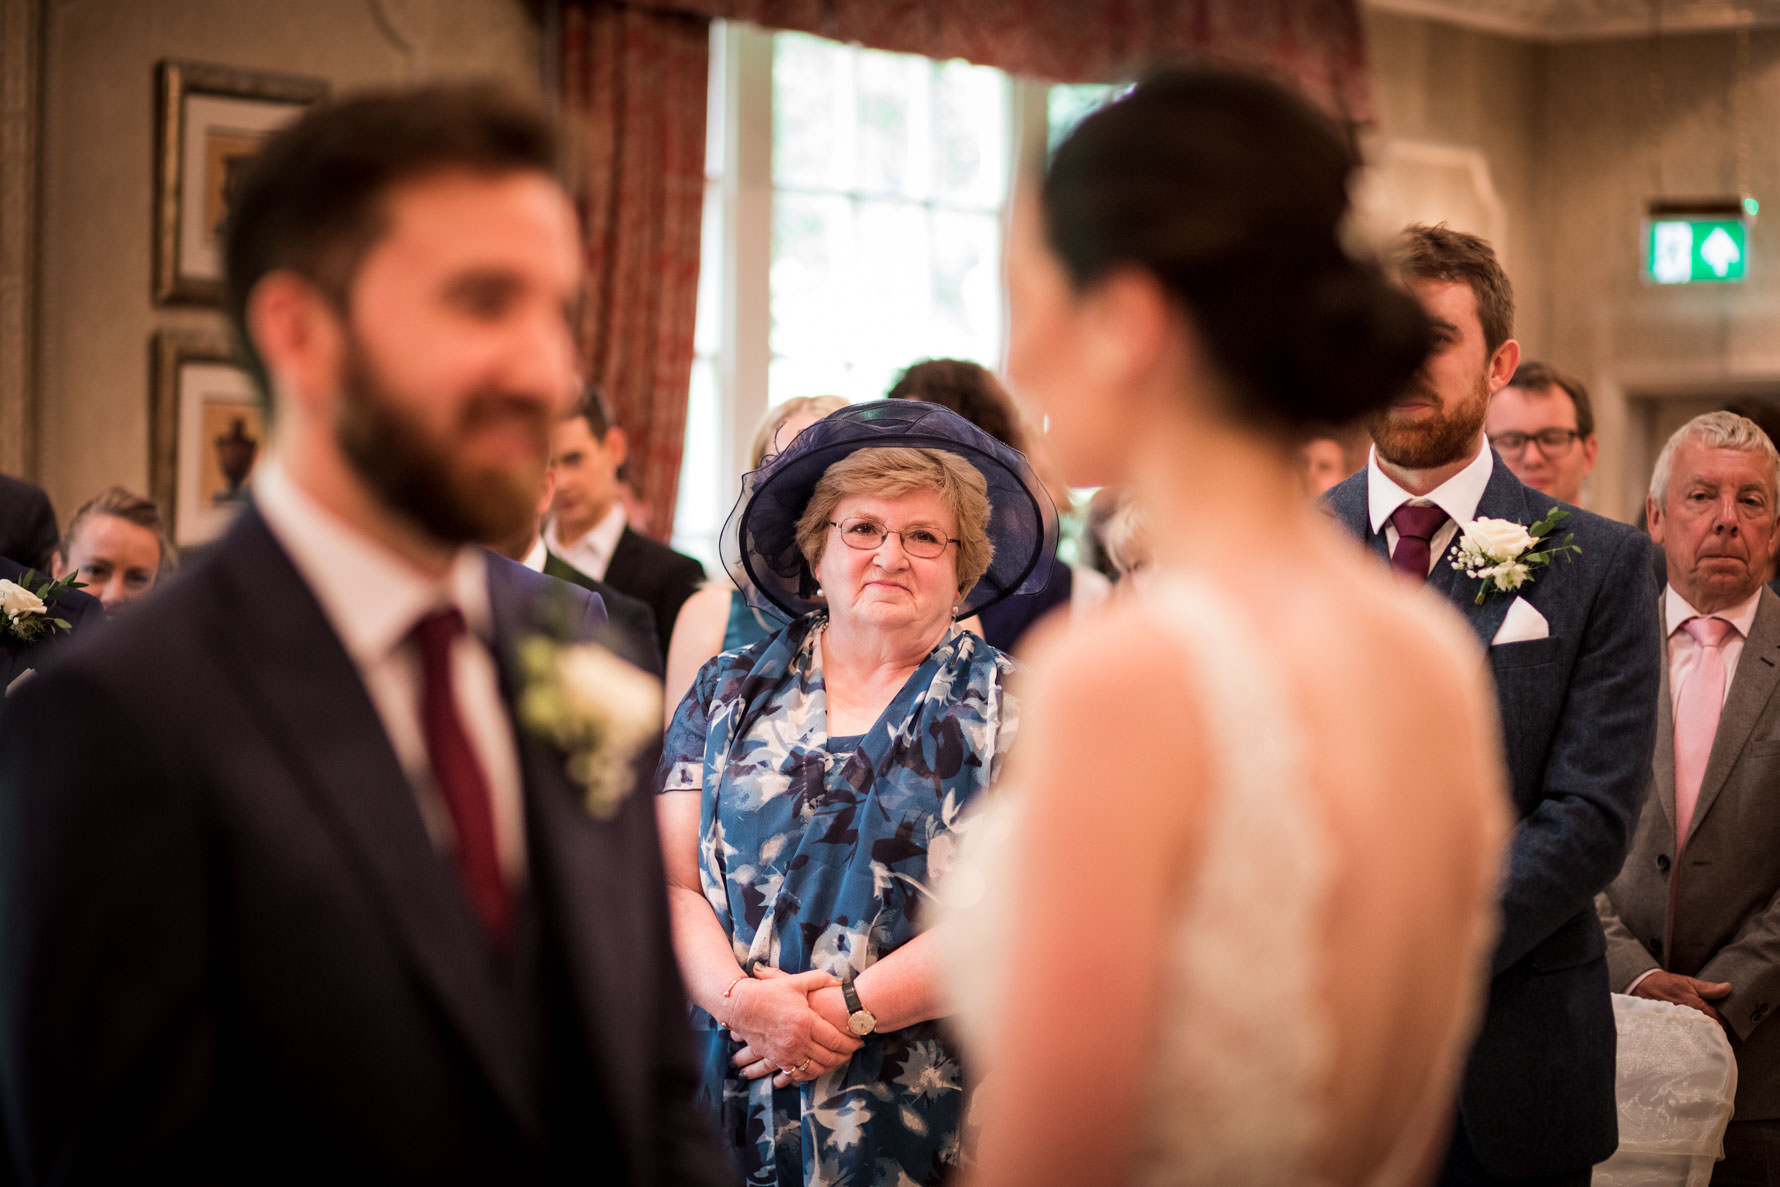 mother of groom looking emotional at bride and groom during wedding ceremony